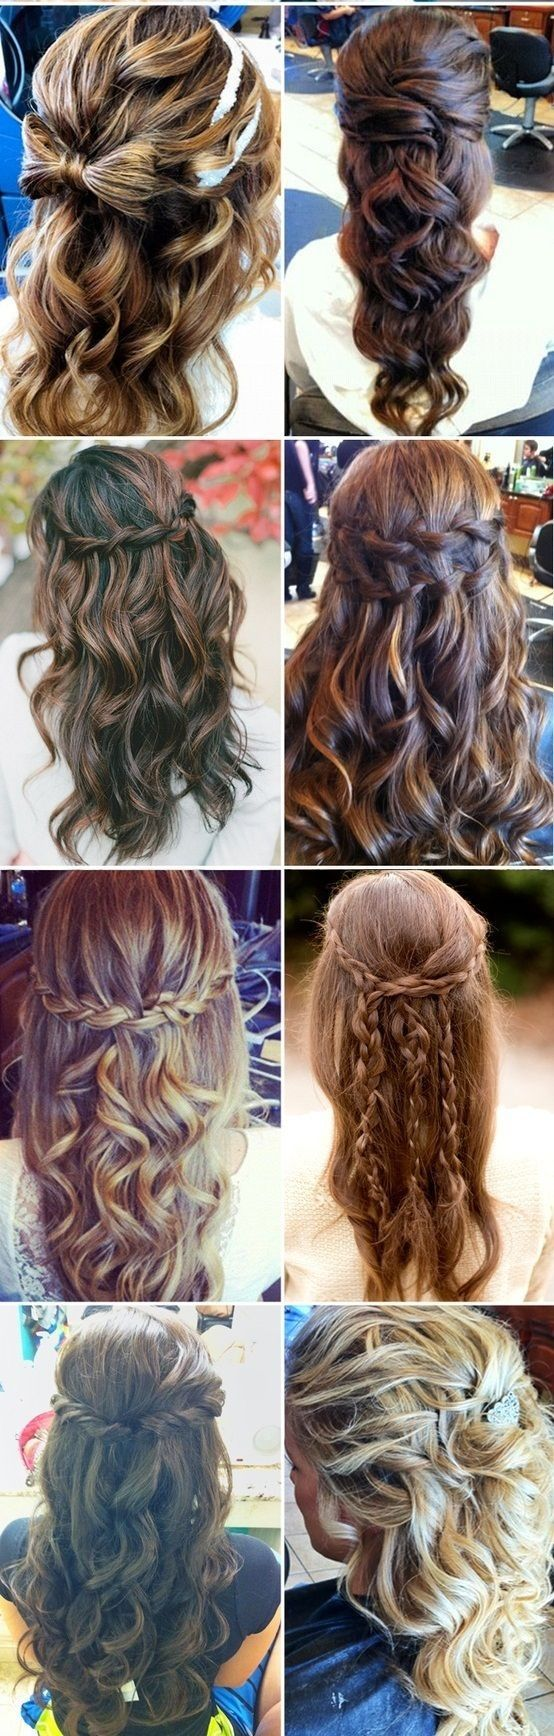 Beautiful Hairstyles For A Party : Wedding birthdays and my hair on